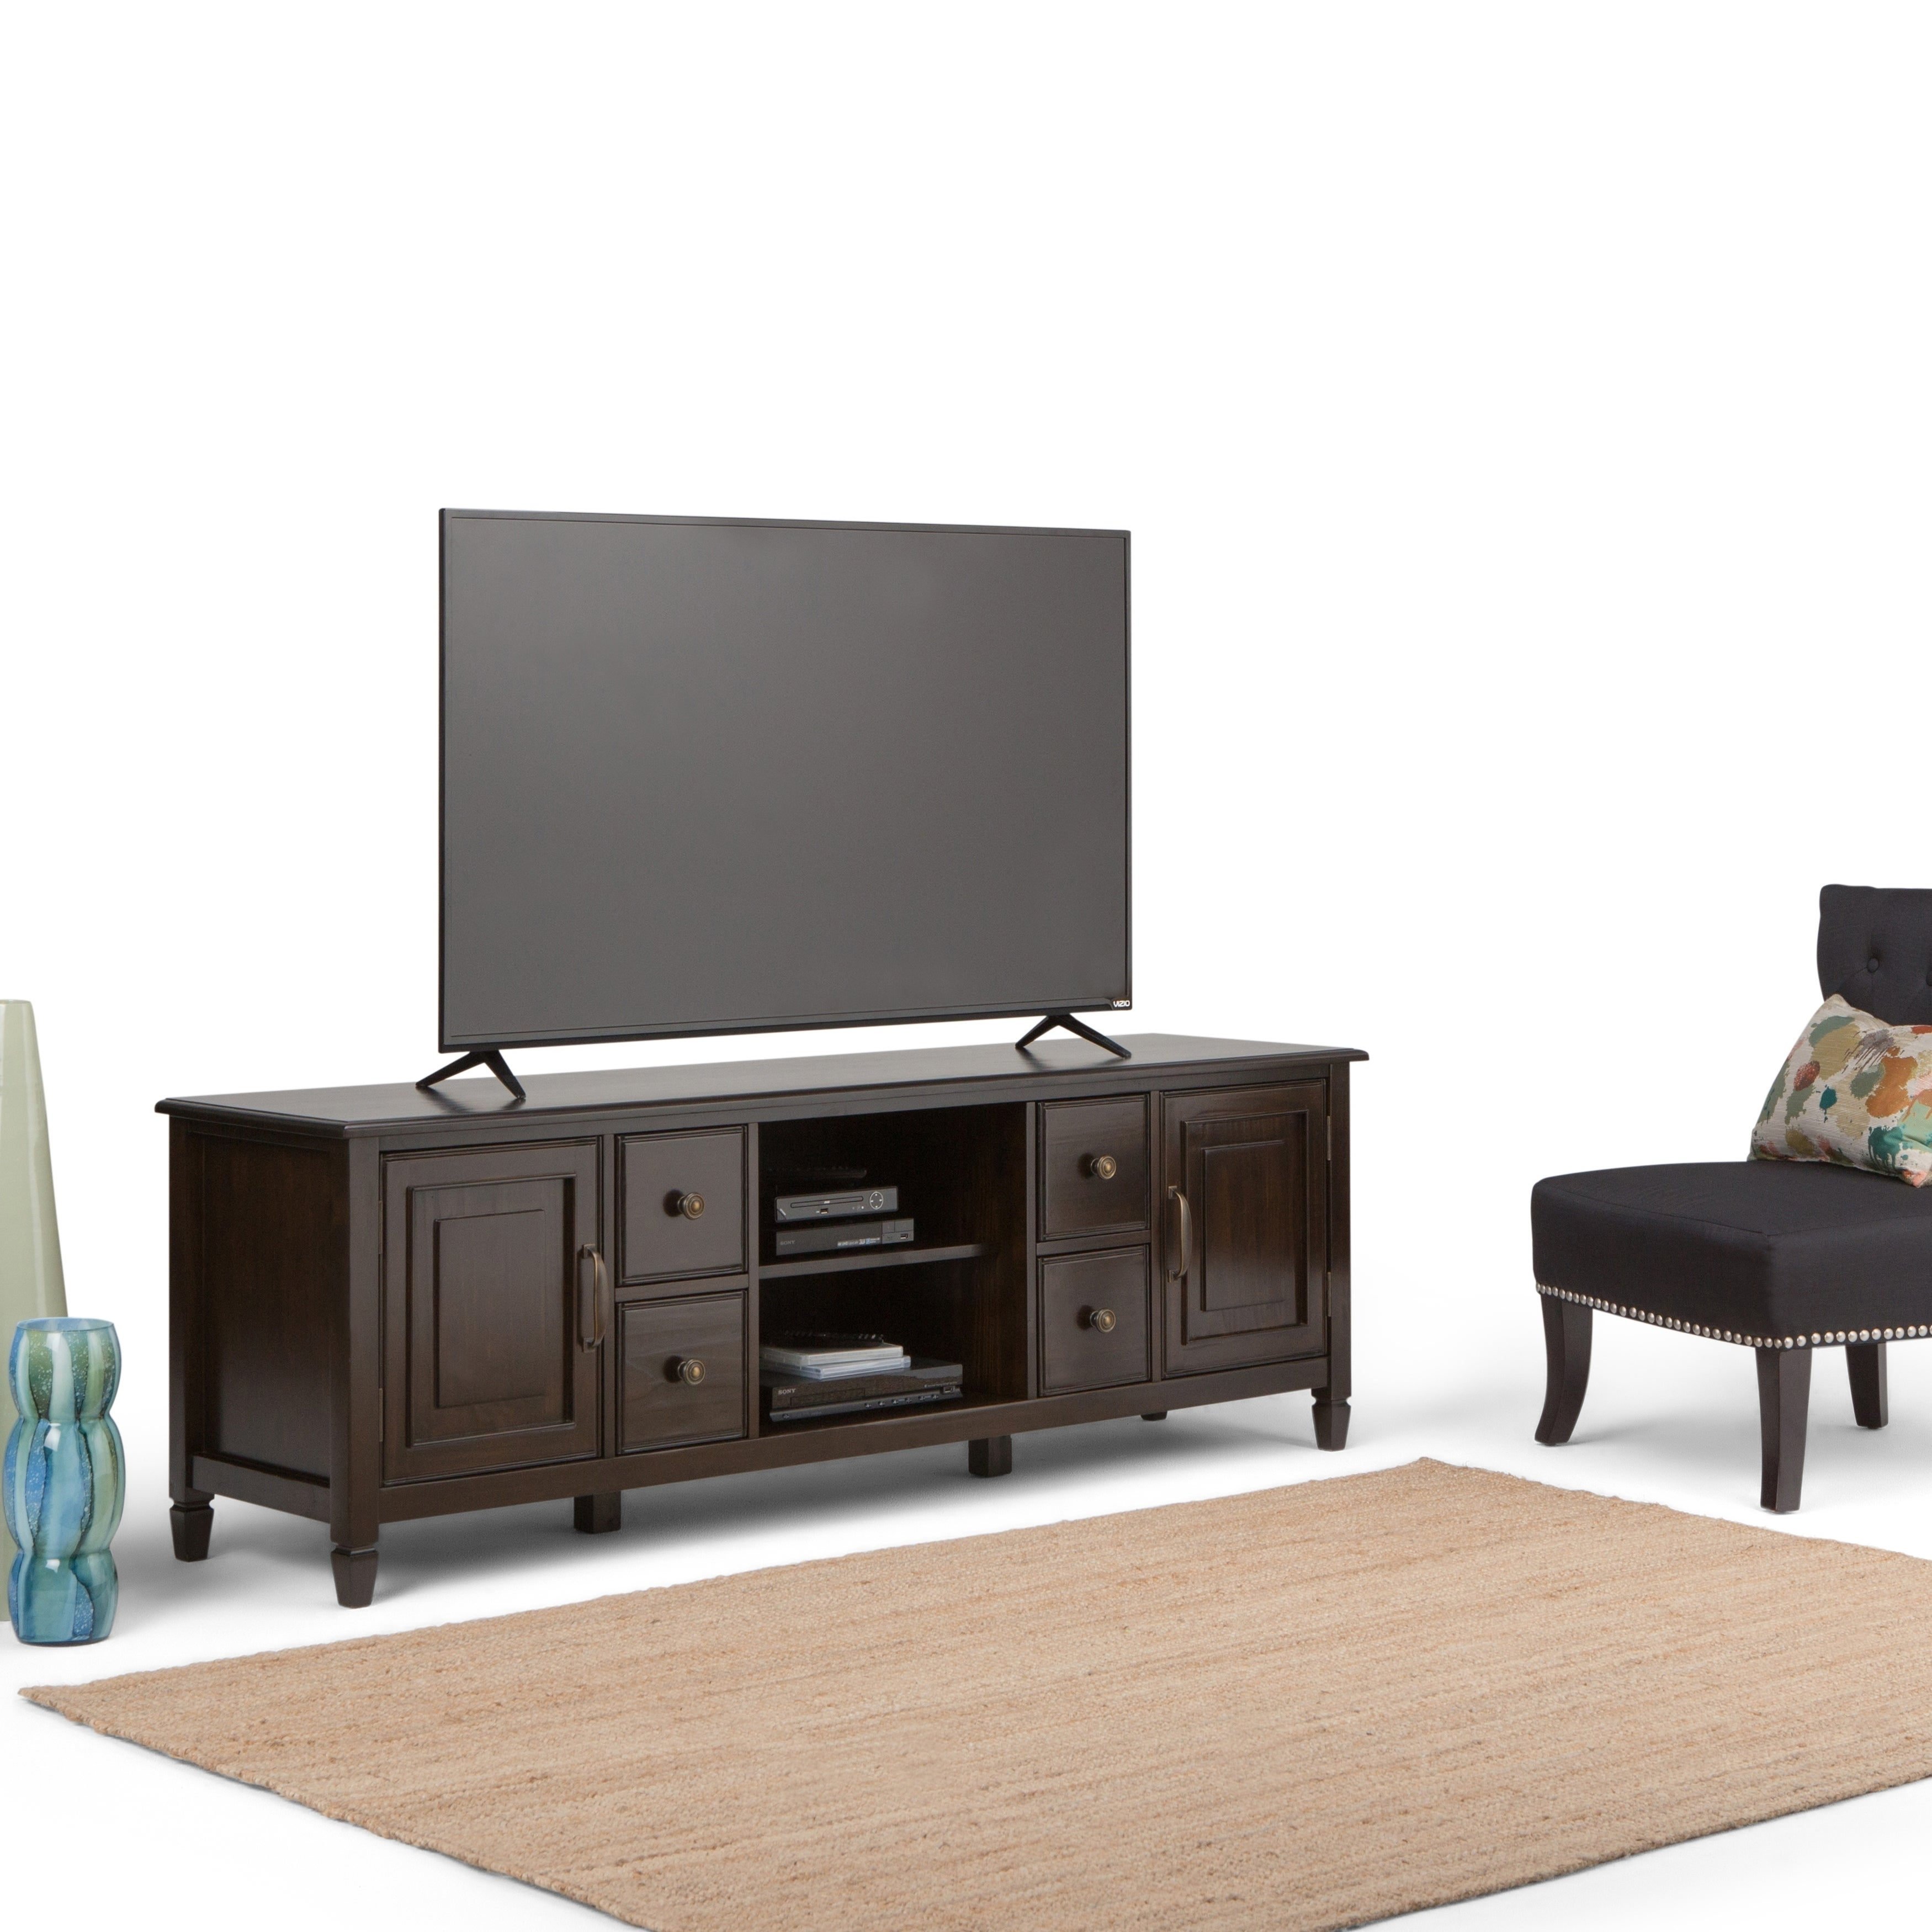 WYNDENHALL Hampshire 72 Inch TV Media Stand For Up To 80 Inch TVu0027s   Free  Shipping Today   Overstock.com   17557847